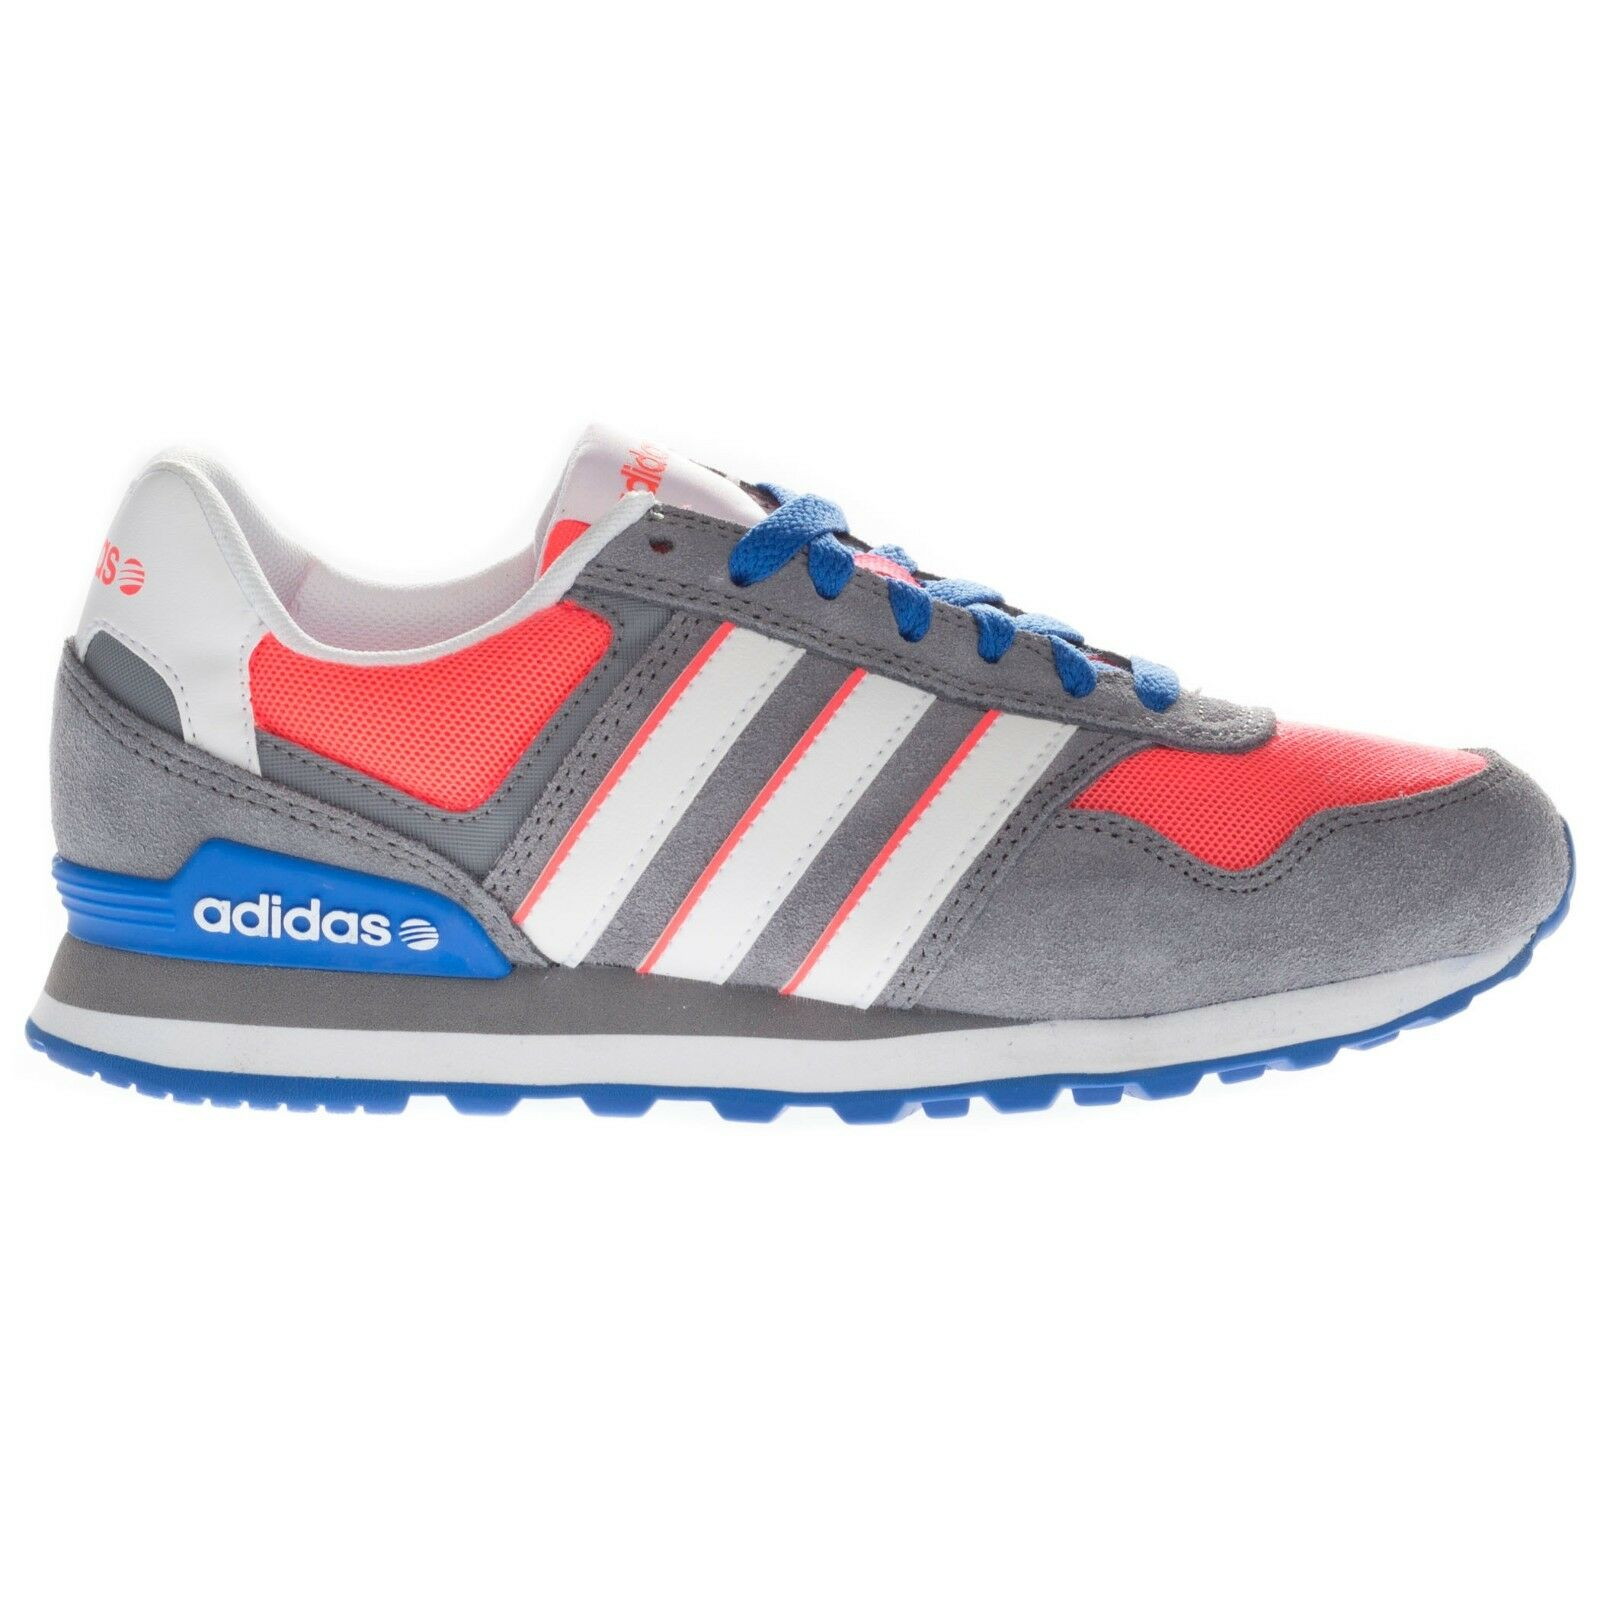 adidas s 10k ortholite low top running sports casual